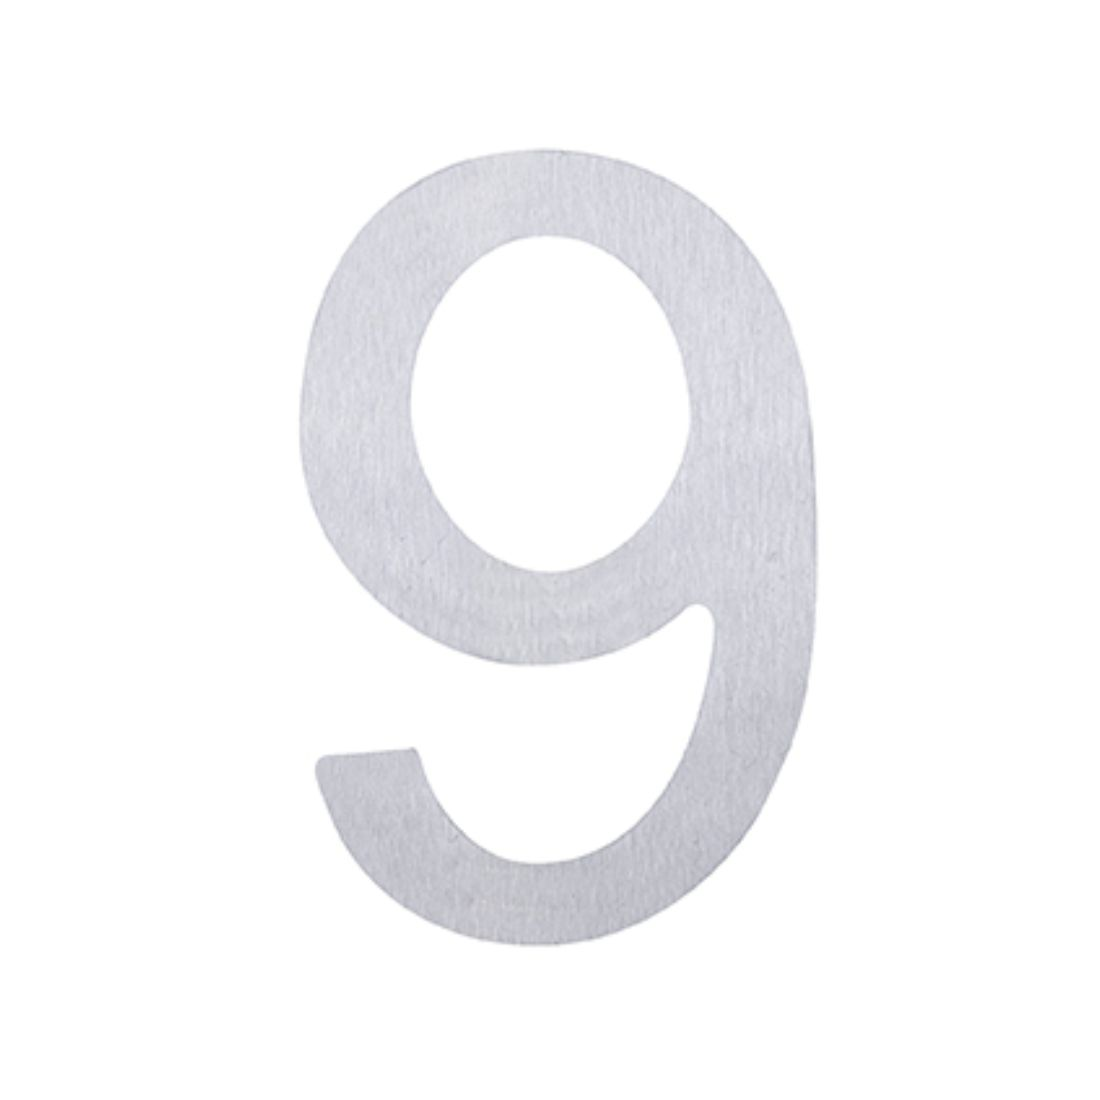 Adhesive Number 9 Stainless Steel 76mm 5367-9-SS